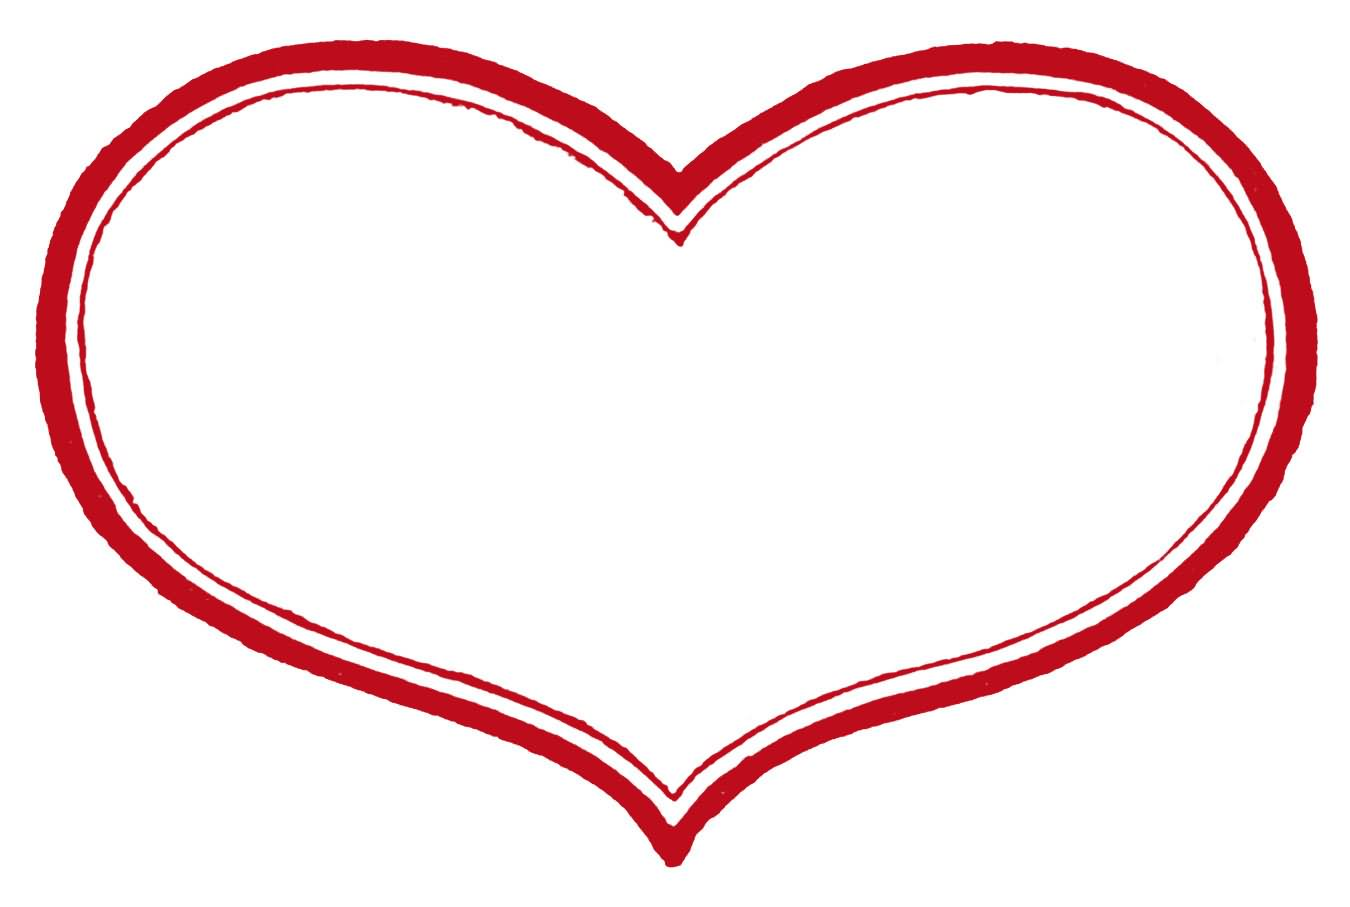 Heart-shaped clipart outlined A Outline Clip Free Clipart